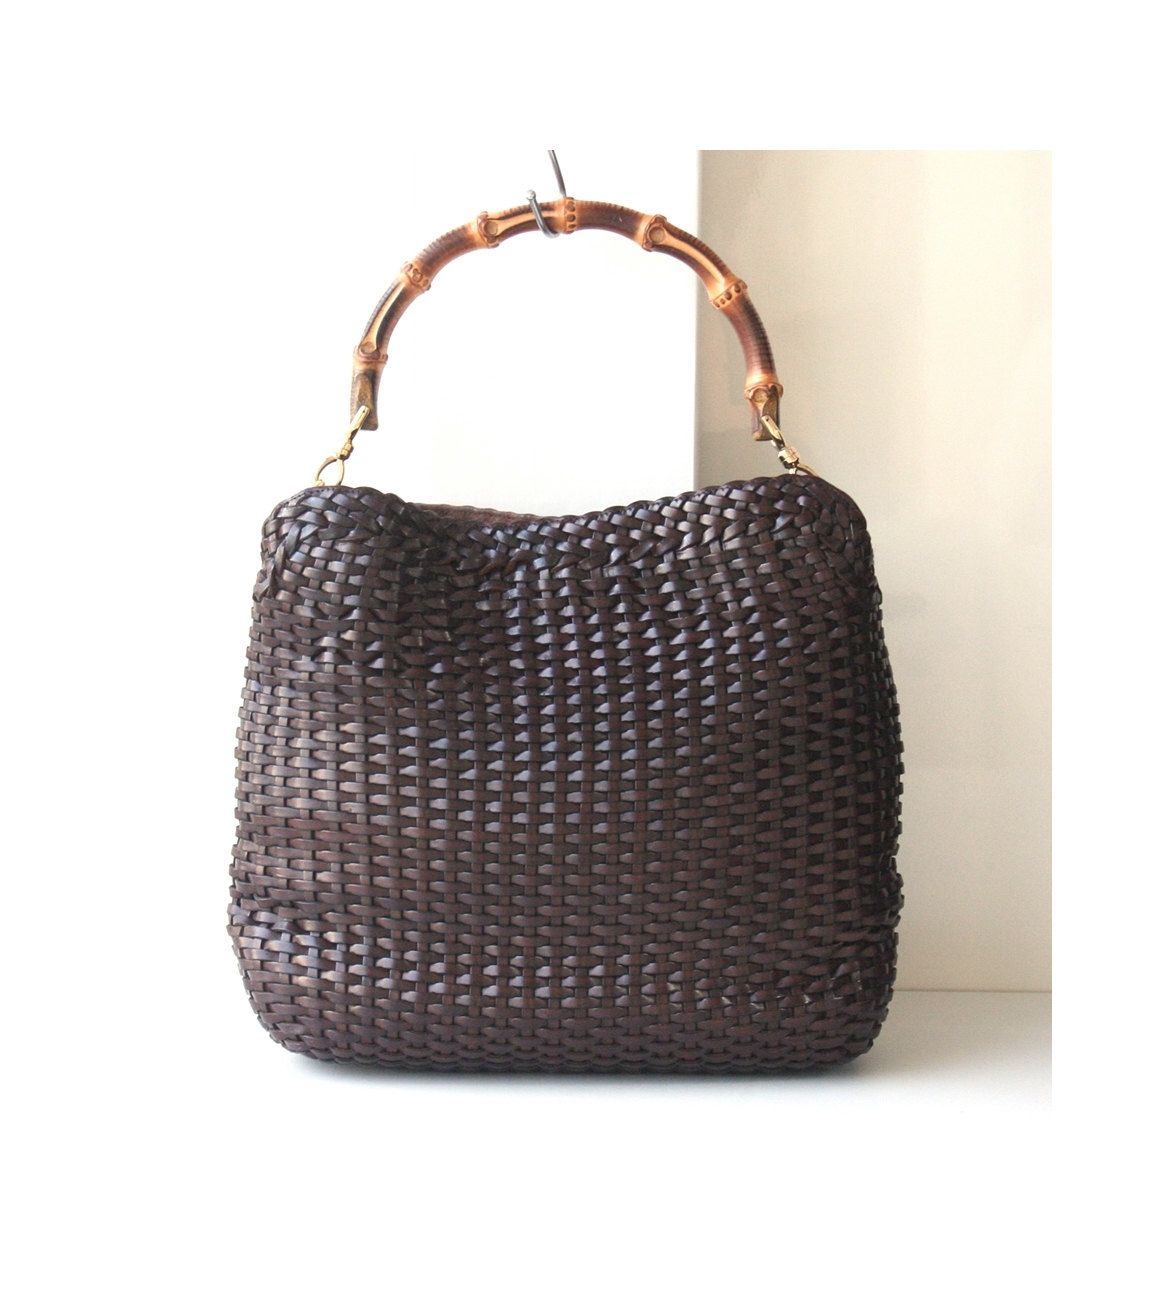 427bf0f927b215 Gucci Bag Brown Leather Woven Bamboo vintage authentic tote handbag purse  rare by hfvin on Etsy #gucci #woven #bamboo #brown #rare #tote #handbag  #authentic ...